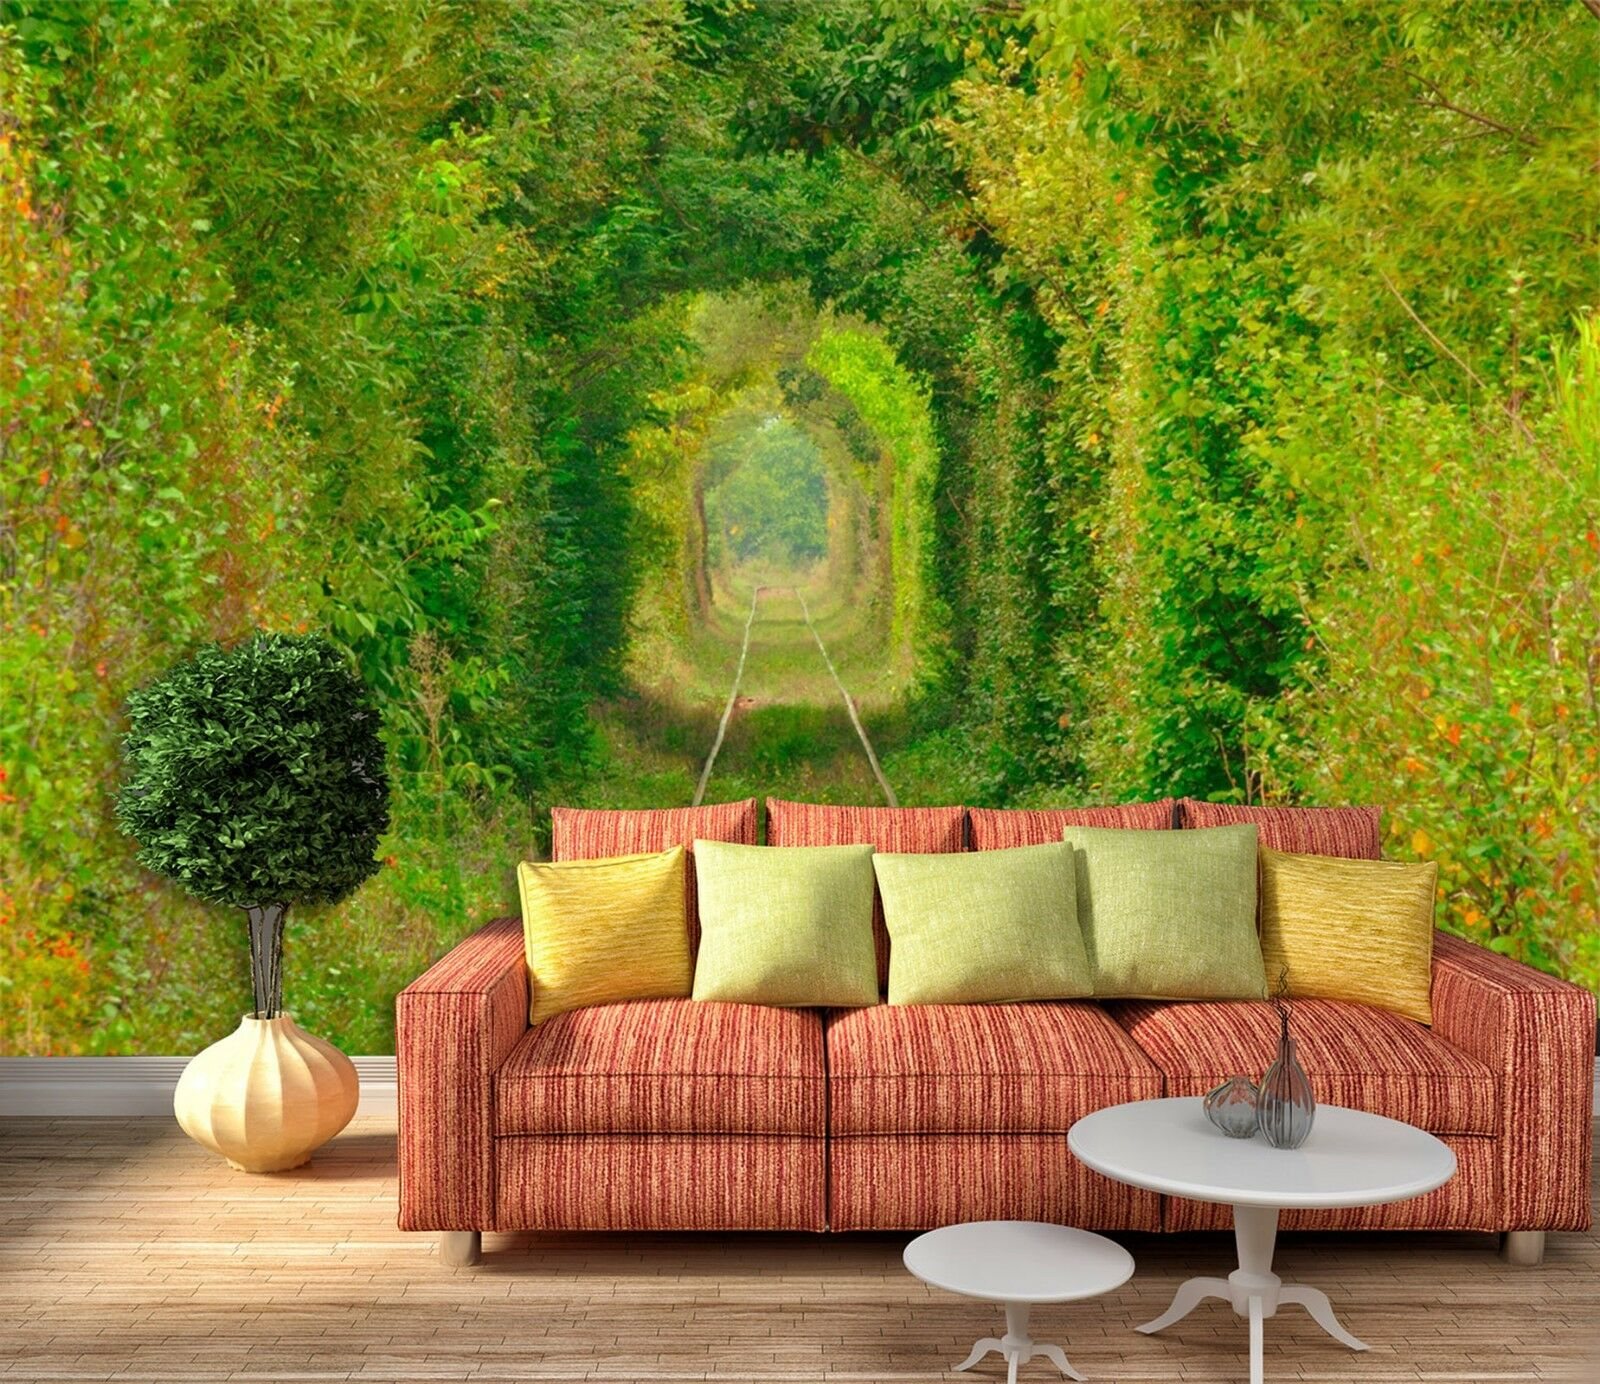 3D Grün trees archway Wall Paper Print Decal Wall Deco Indoor wall Mural